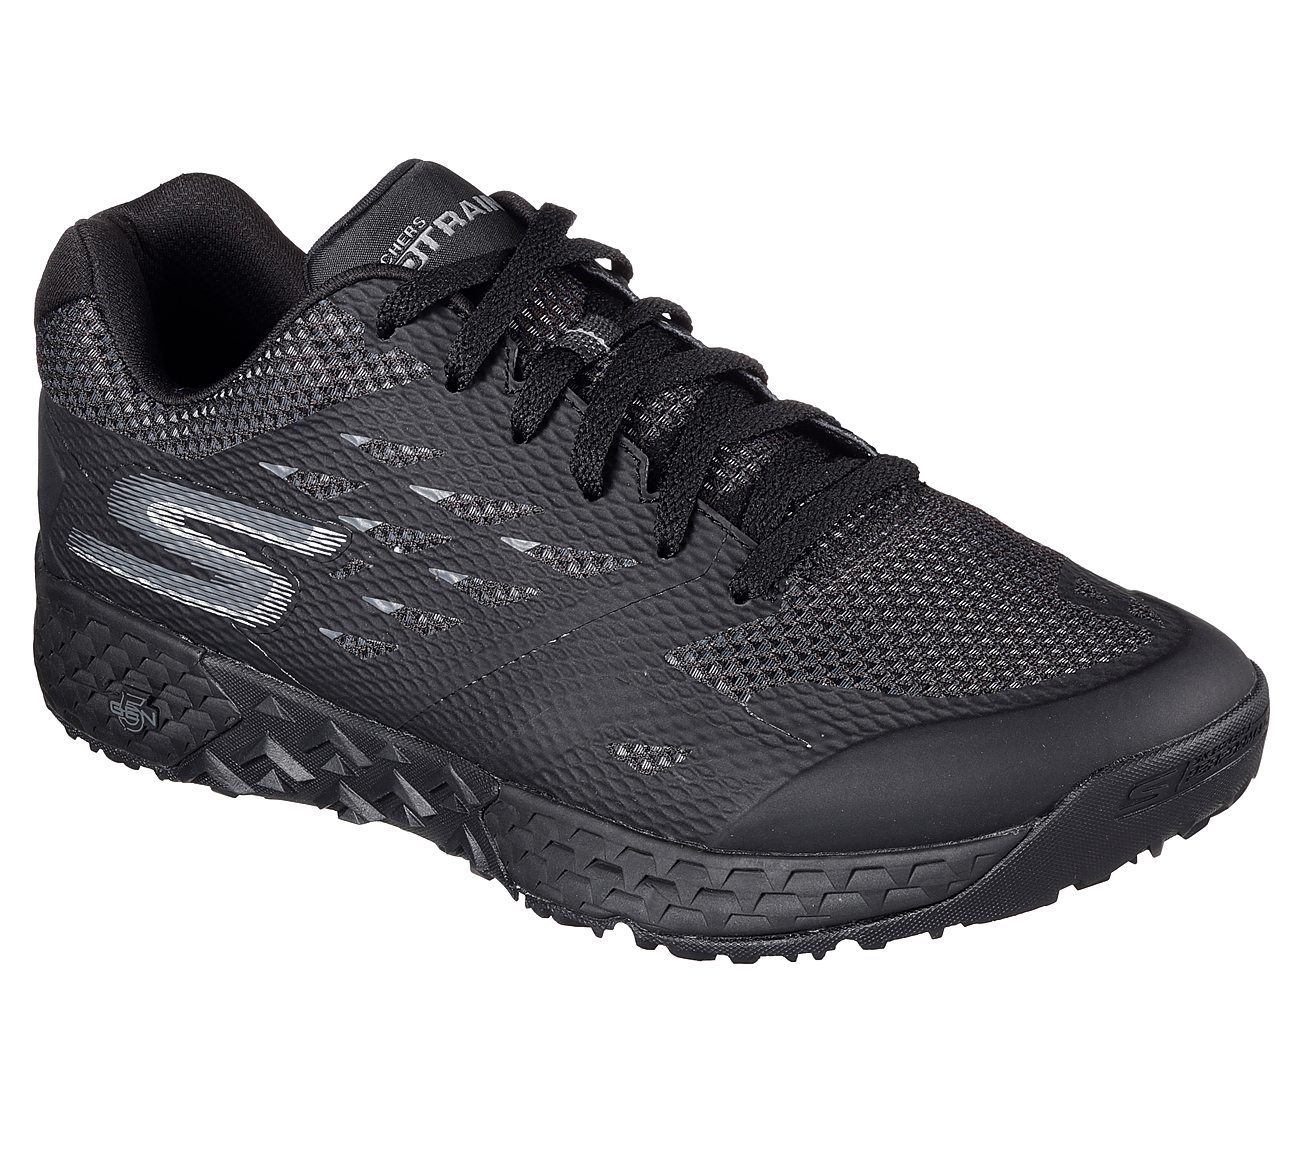 Endurance Skechers Performance Shoes